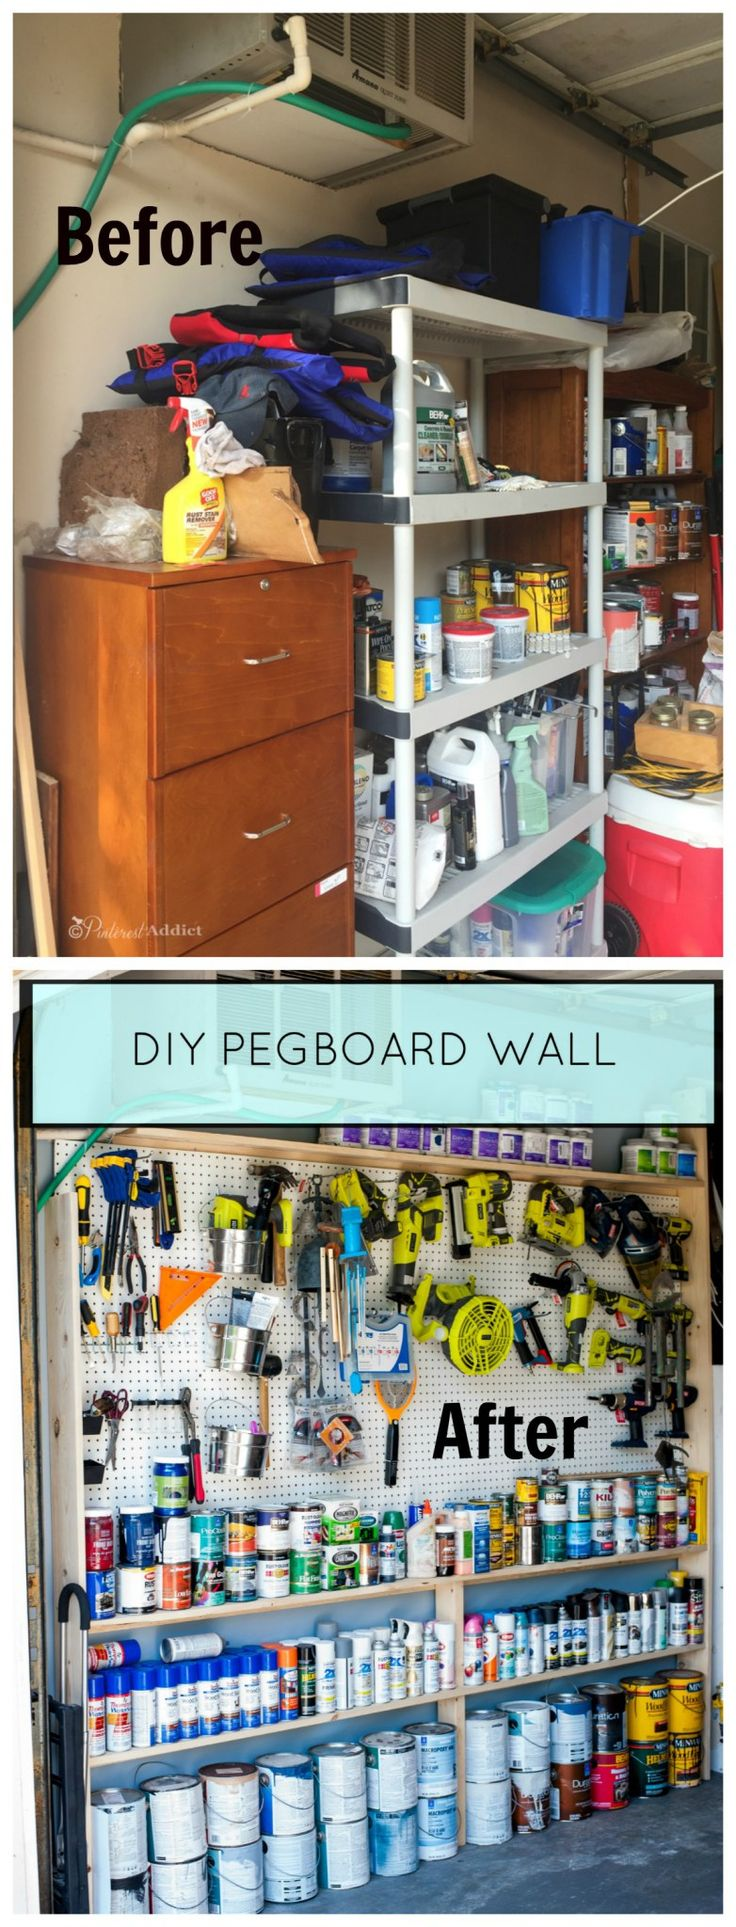 Garage Makeover - Good Housekeeping Spring Cleaning Challenge - Pinterest Addict